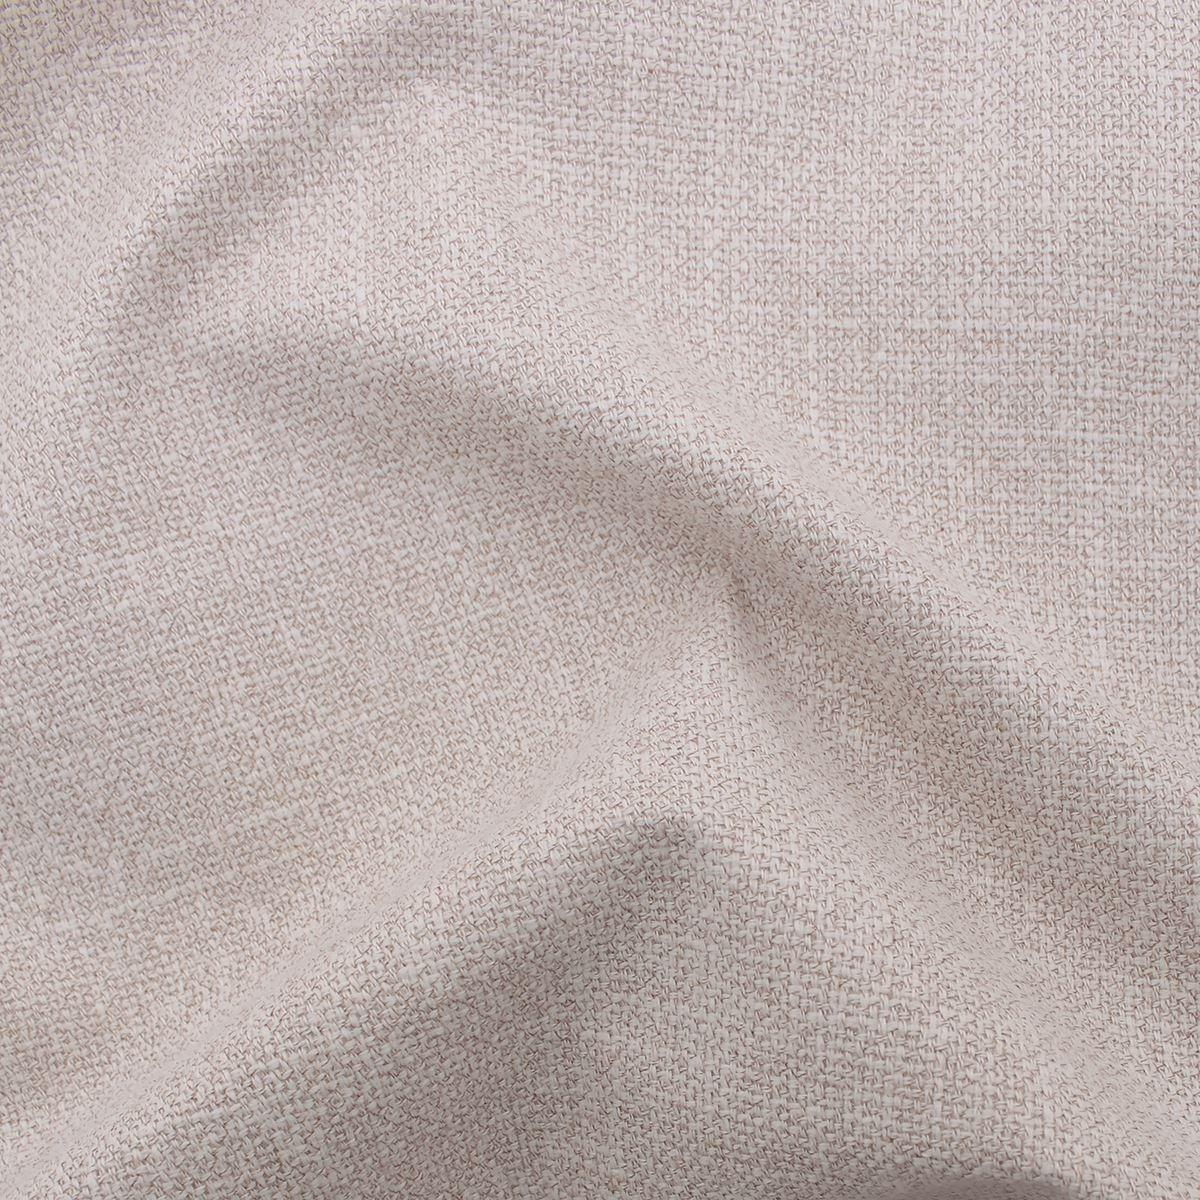 Bilbao Plain Slubbed Linen Look